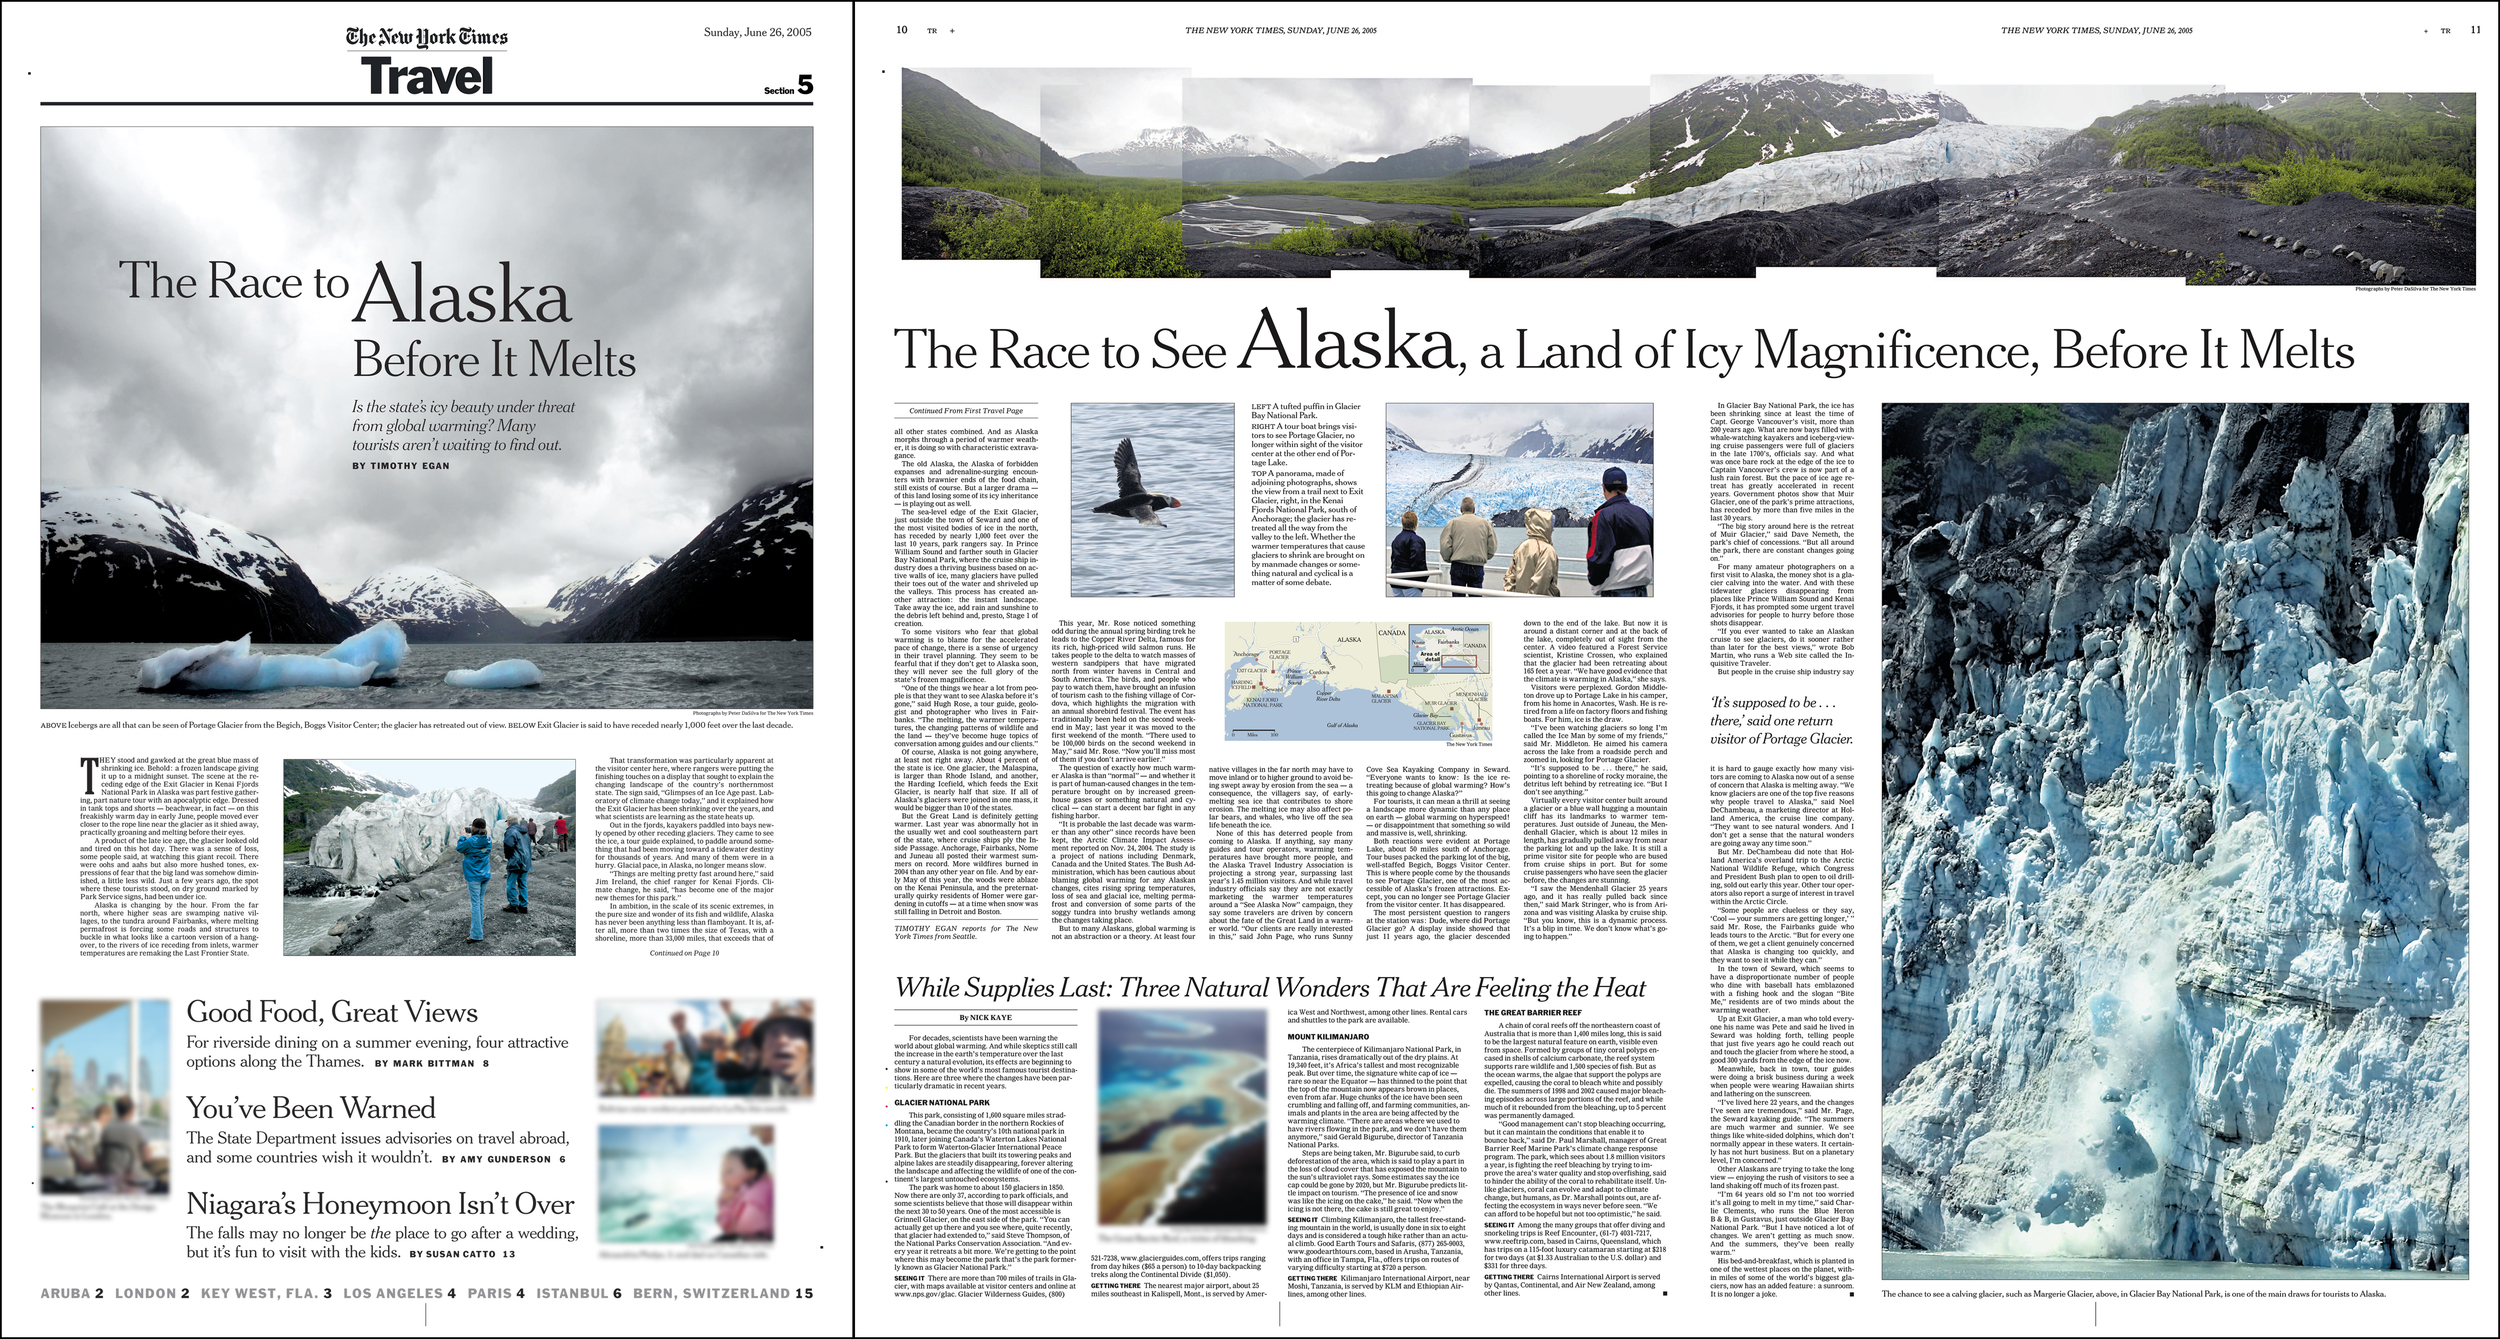 New York Times - Travel   -cover/double truck spread